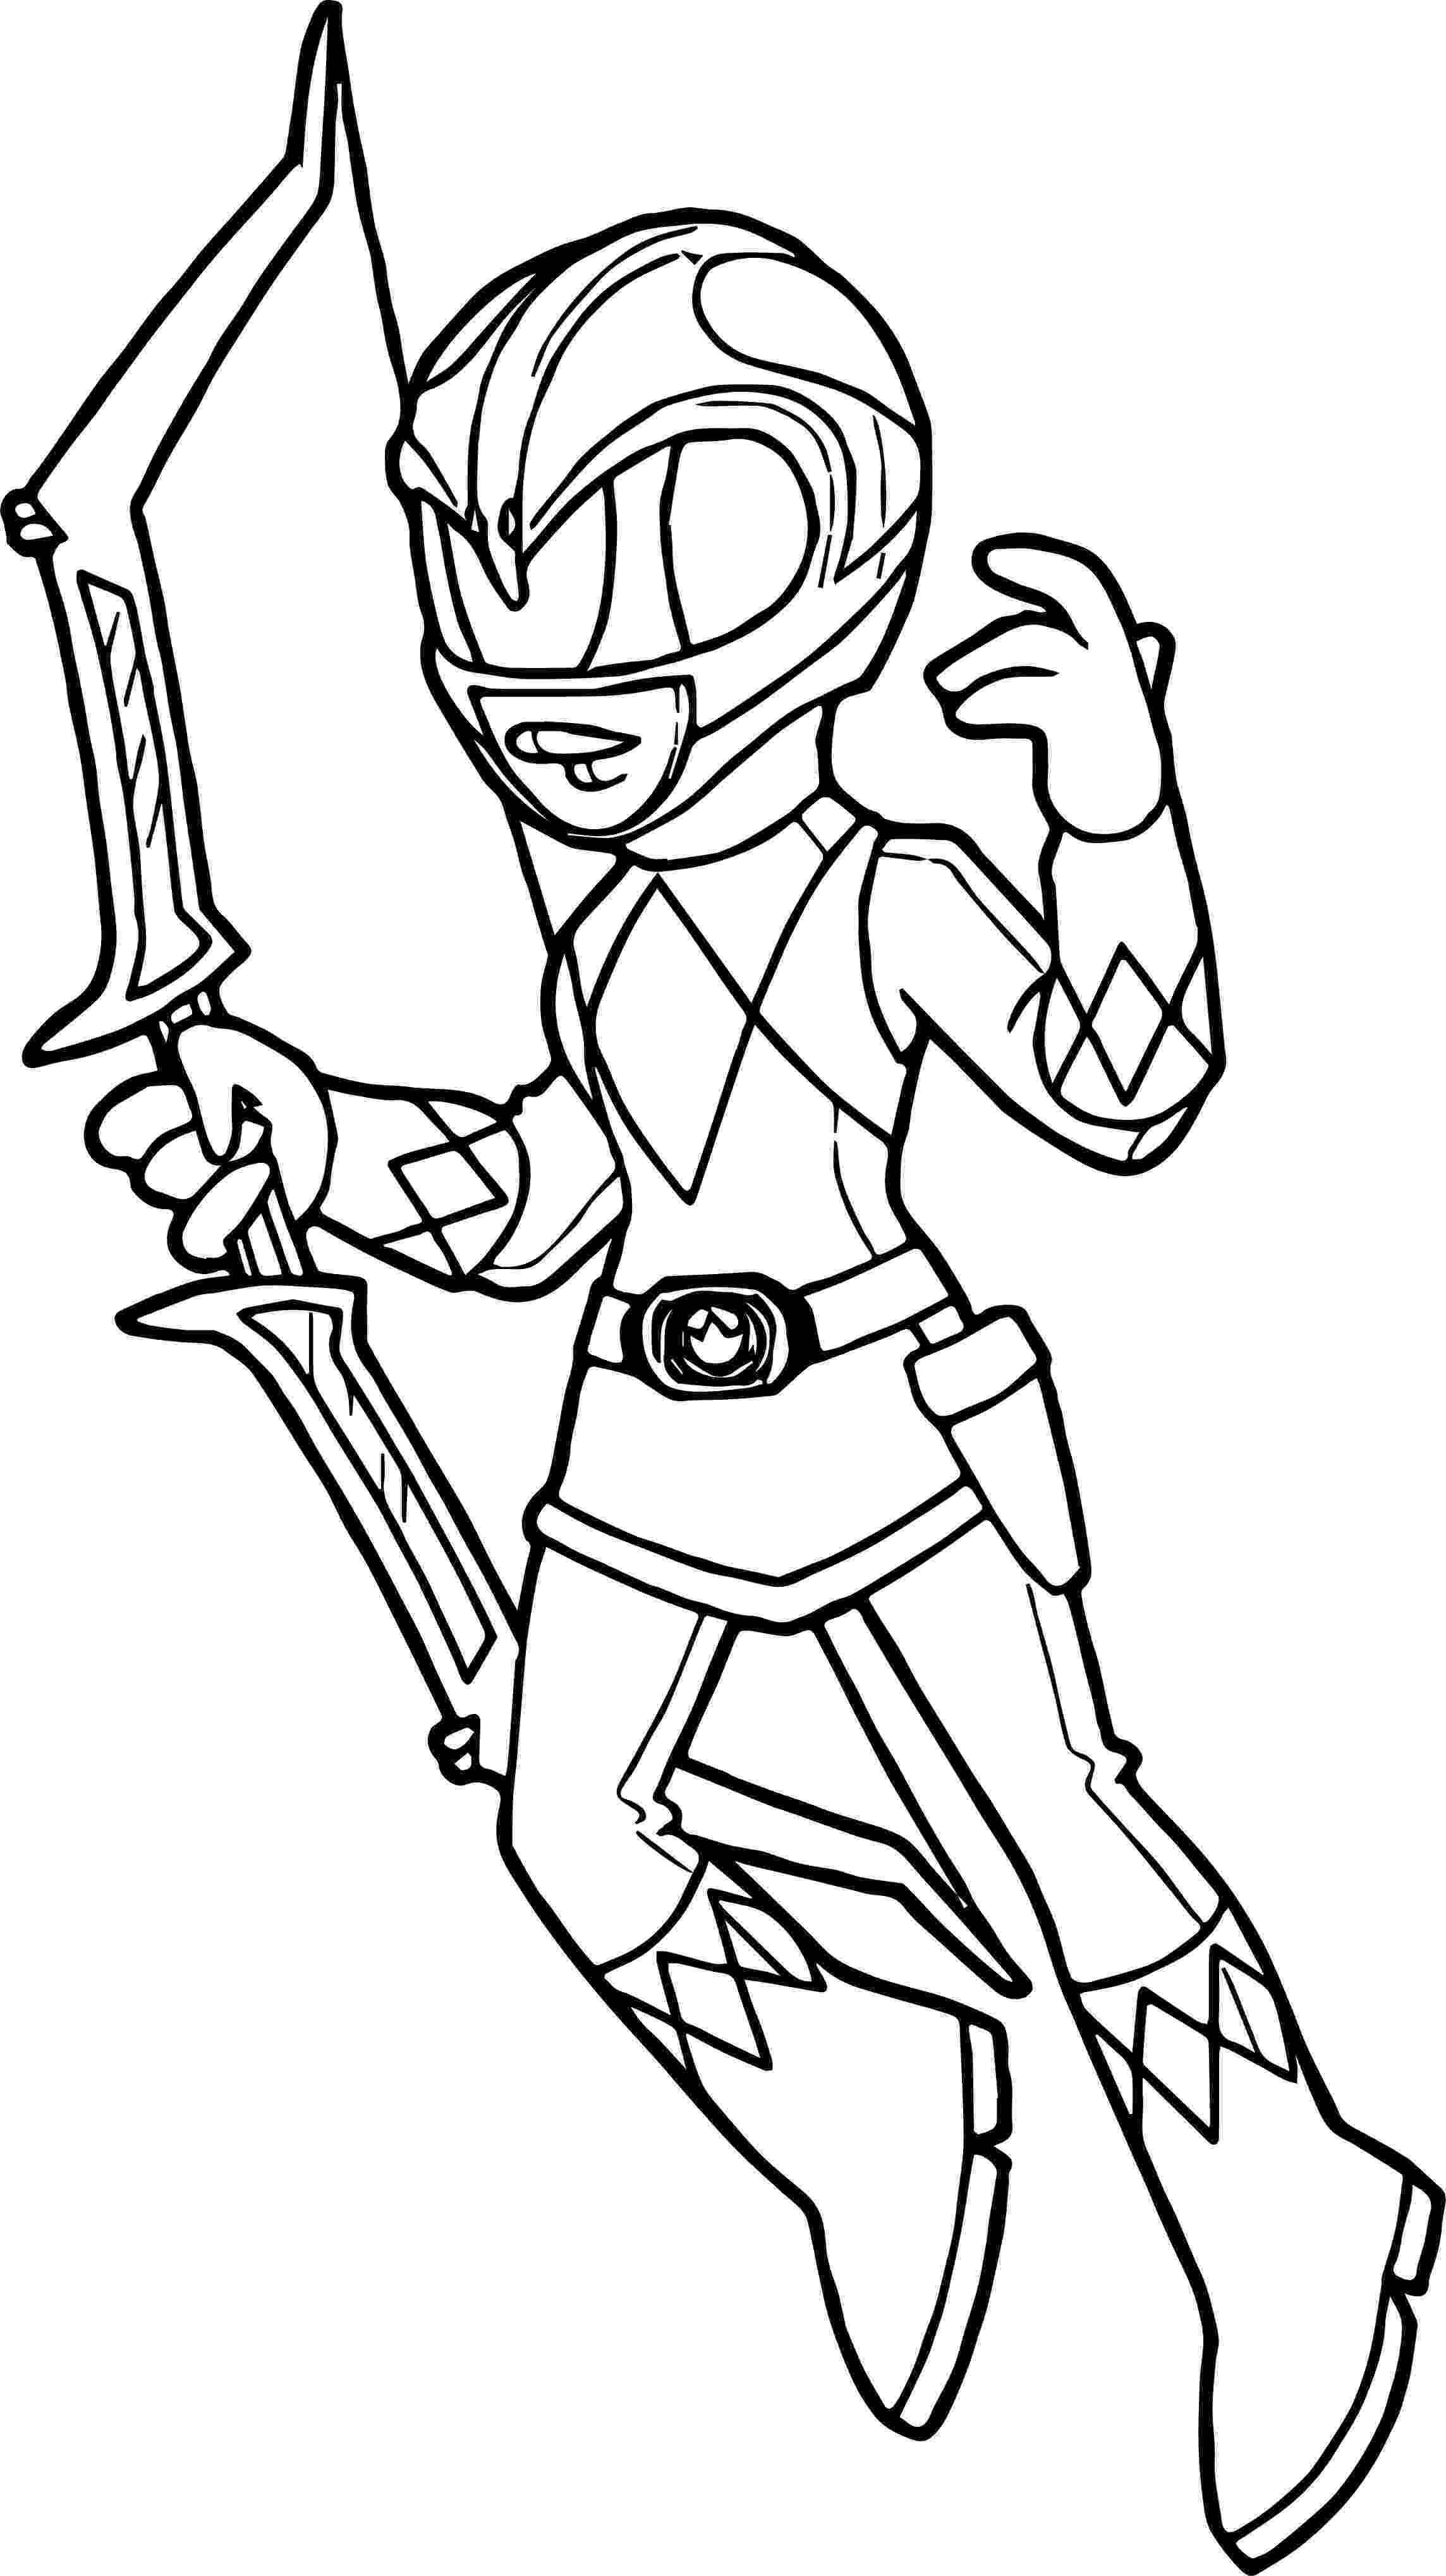 power rangers coloring pages get this power ranger dino force coloring pages for kids rangers coloring power pages